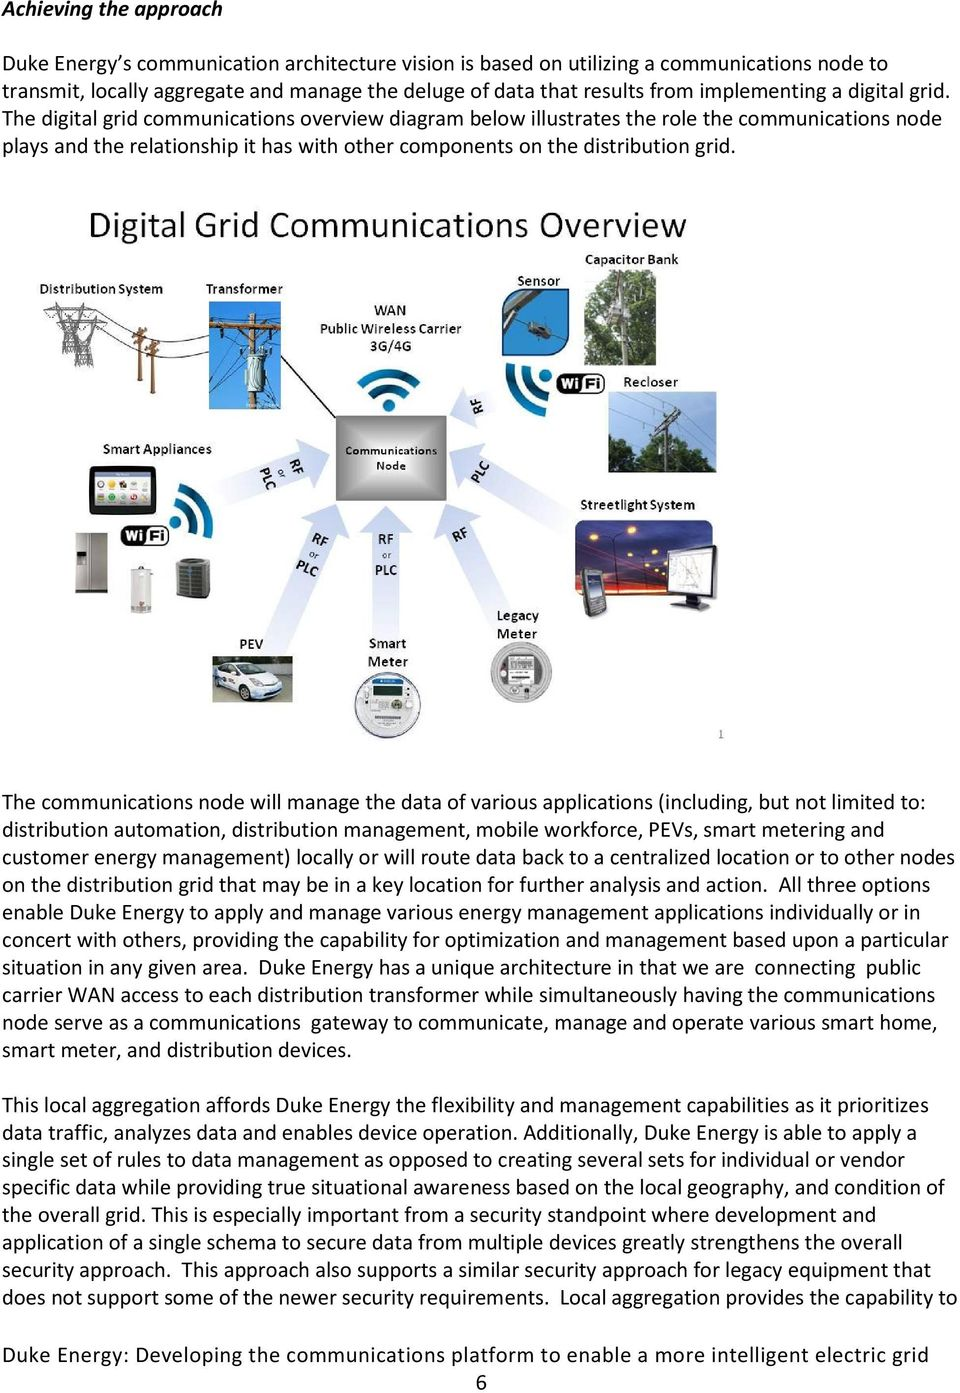 The digital grid communications overview diagram below illustrates the role the communications node plays and the relationship it has with other components on the distribution grid.